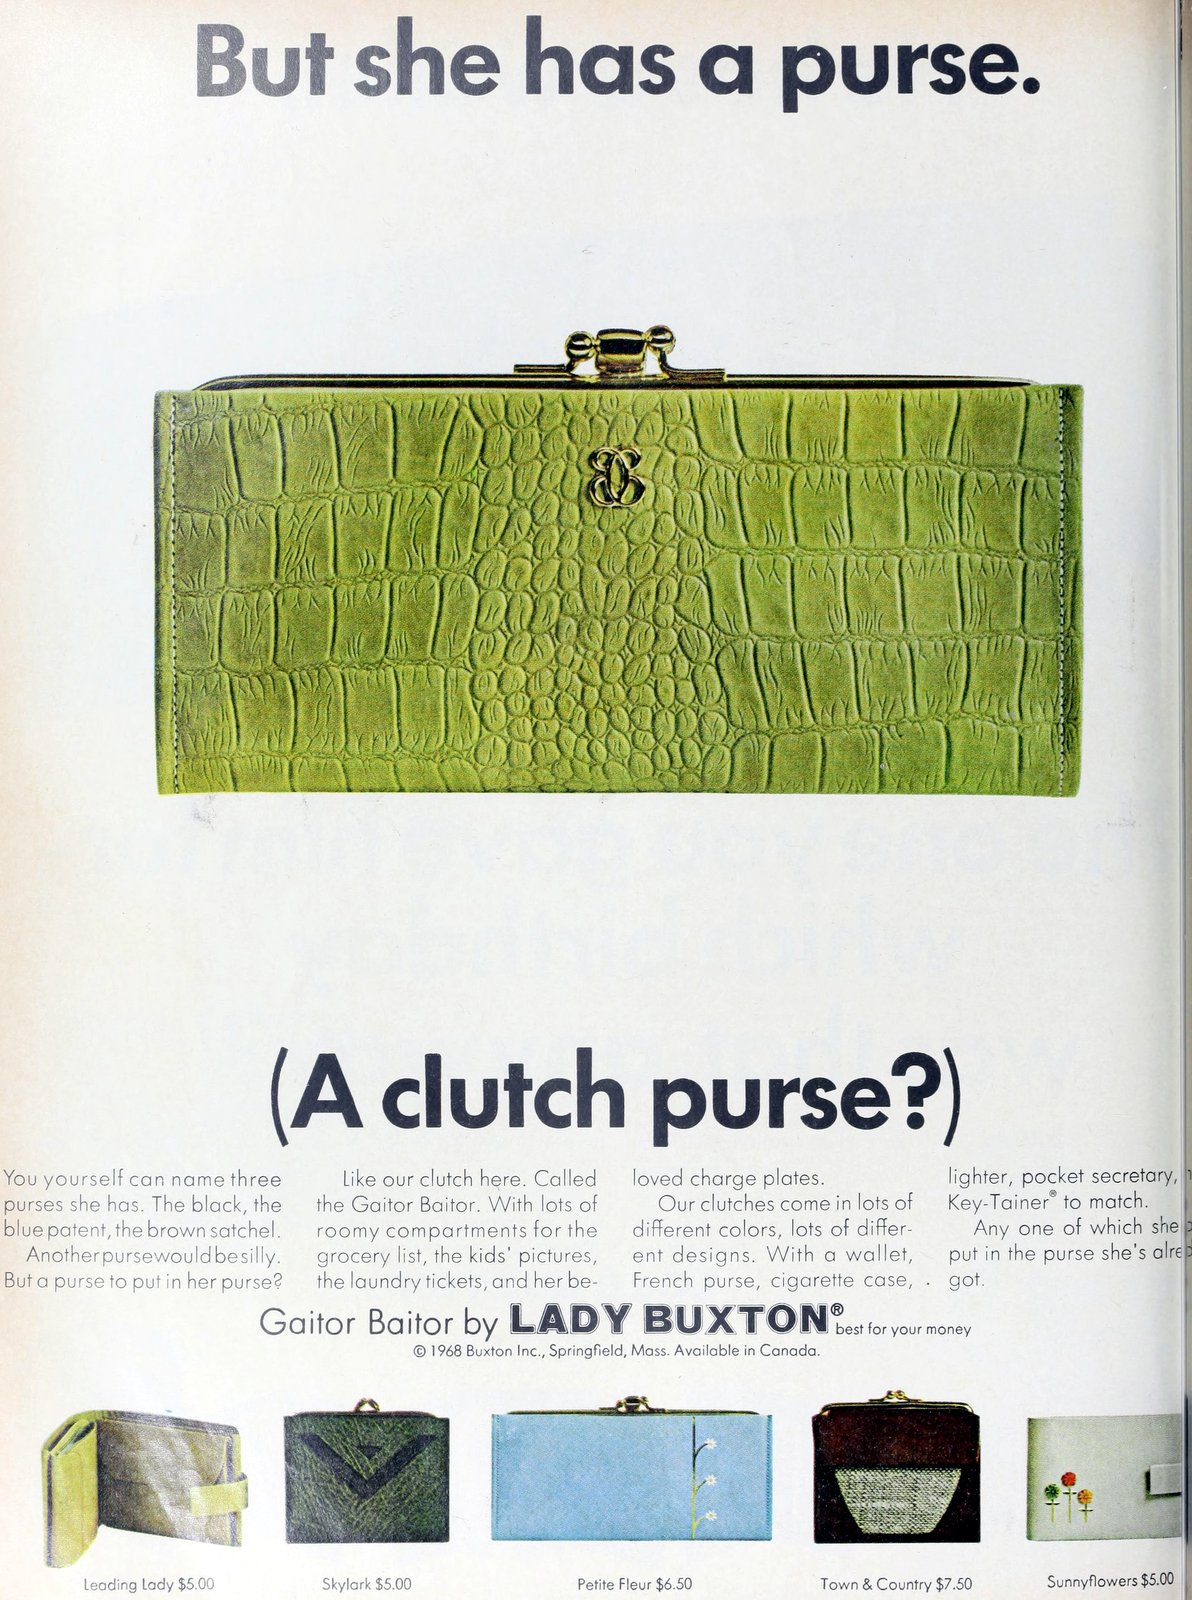 Retro 1960s clutch purse wallet - green Gaitor Baitor by Lady Buxton (1968)